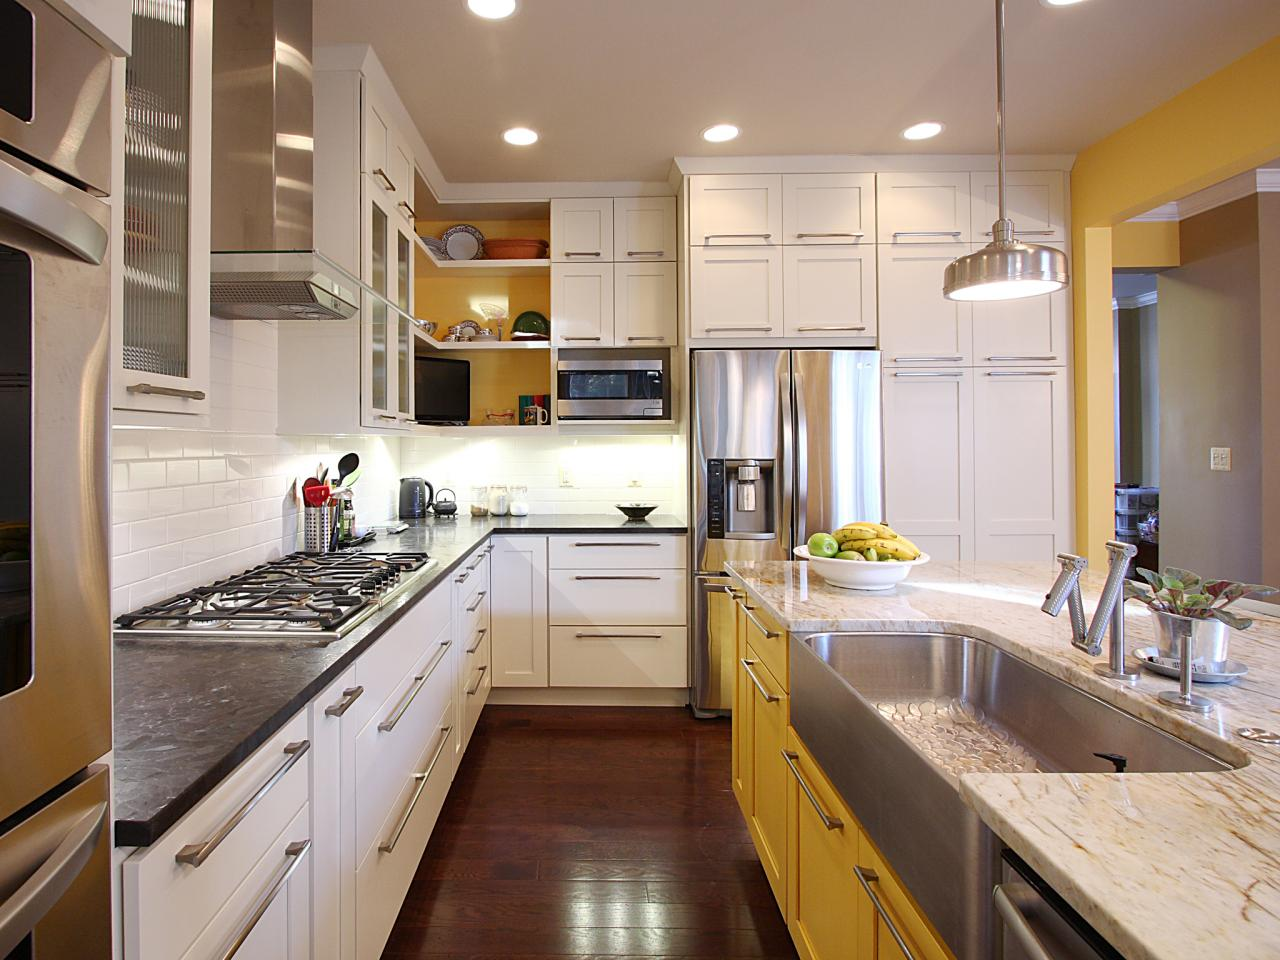 DIY Painting Kitchen Cabinets Ideas + Pictures From HGTV ...